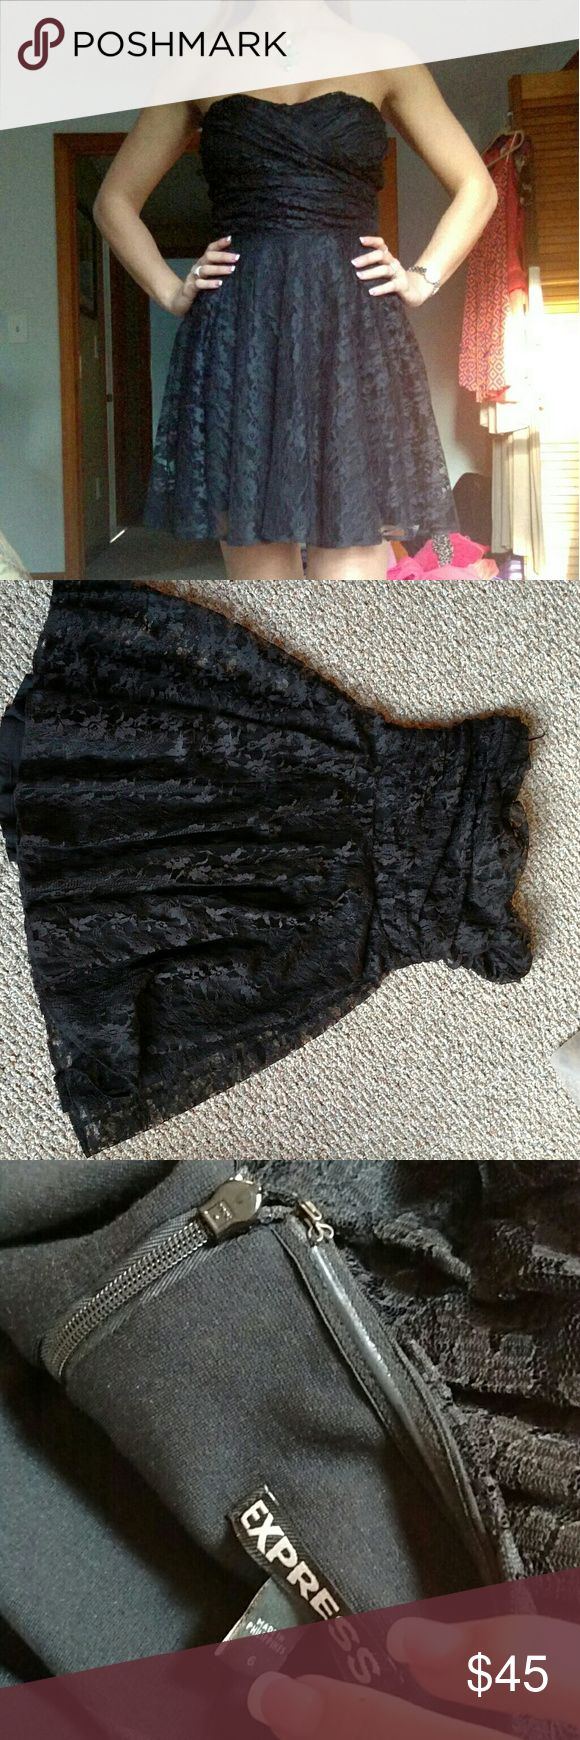 The perfect little black lace dress Love this black lace dress for express. Worn once at a wedding. Size 6 with rubber edge around the bust area to keep from falling  and its comfortable perfect for dancing in. Express Dresses Mini